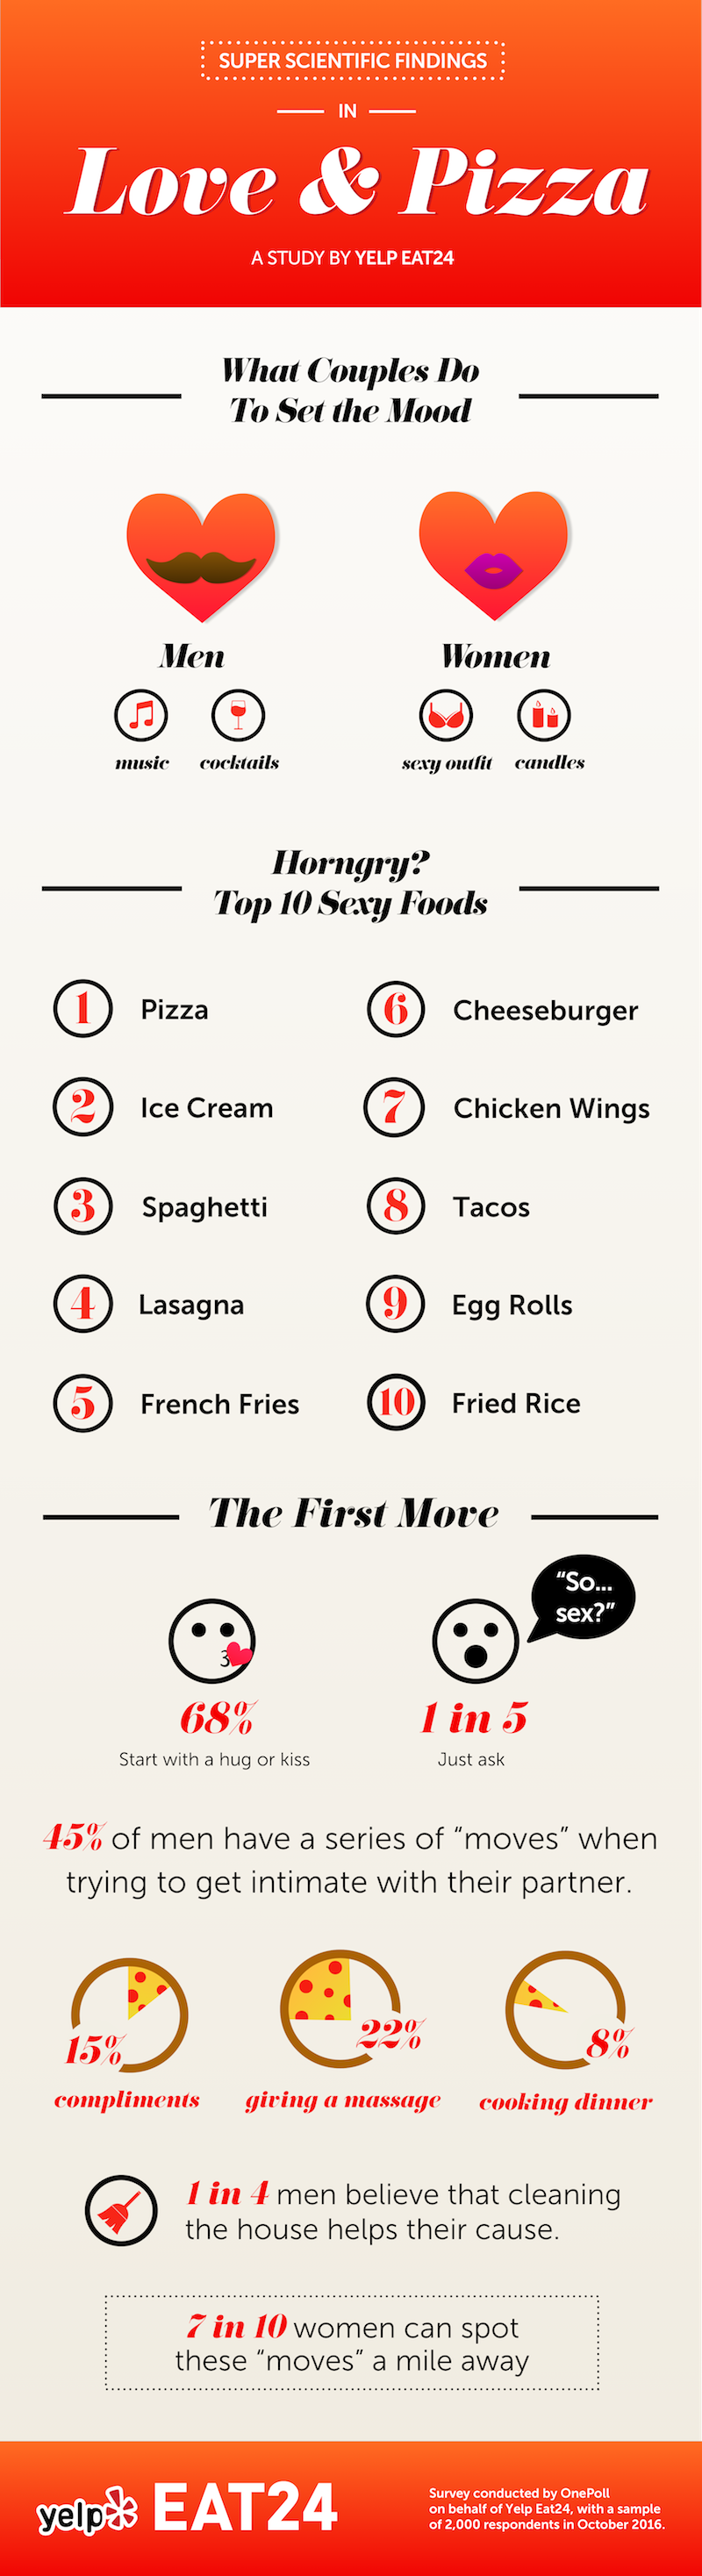 Love and Pizza Infographic